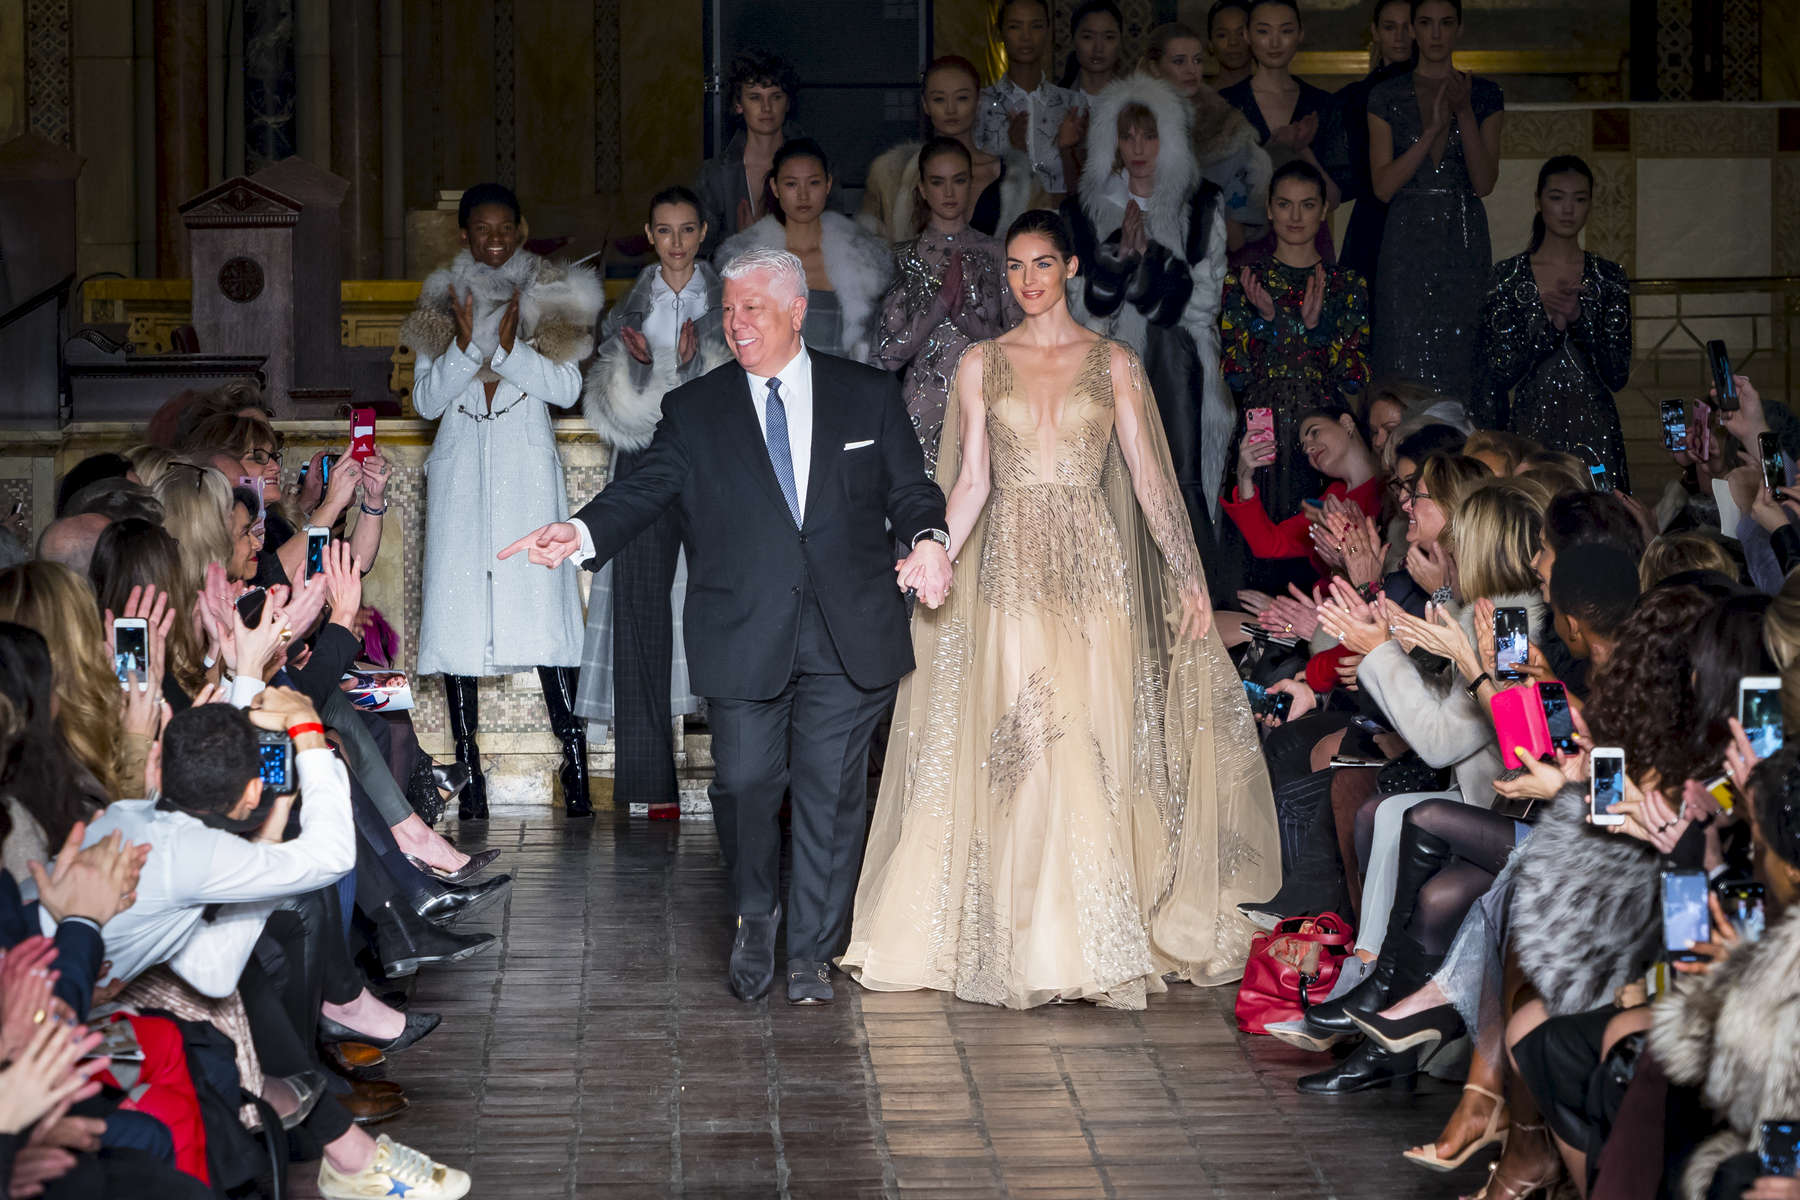 Audience applauded as designer Dennis Basso and model Hilary Rhoda walk together at the end of Dennis Basso's fashion show at the New York Fashion Week held inside Saint Bartholomew's Church located at 325 Park Avenue in Manhattan, New York on Monday, February 12, 2018.